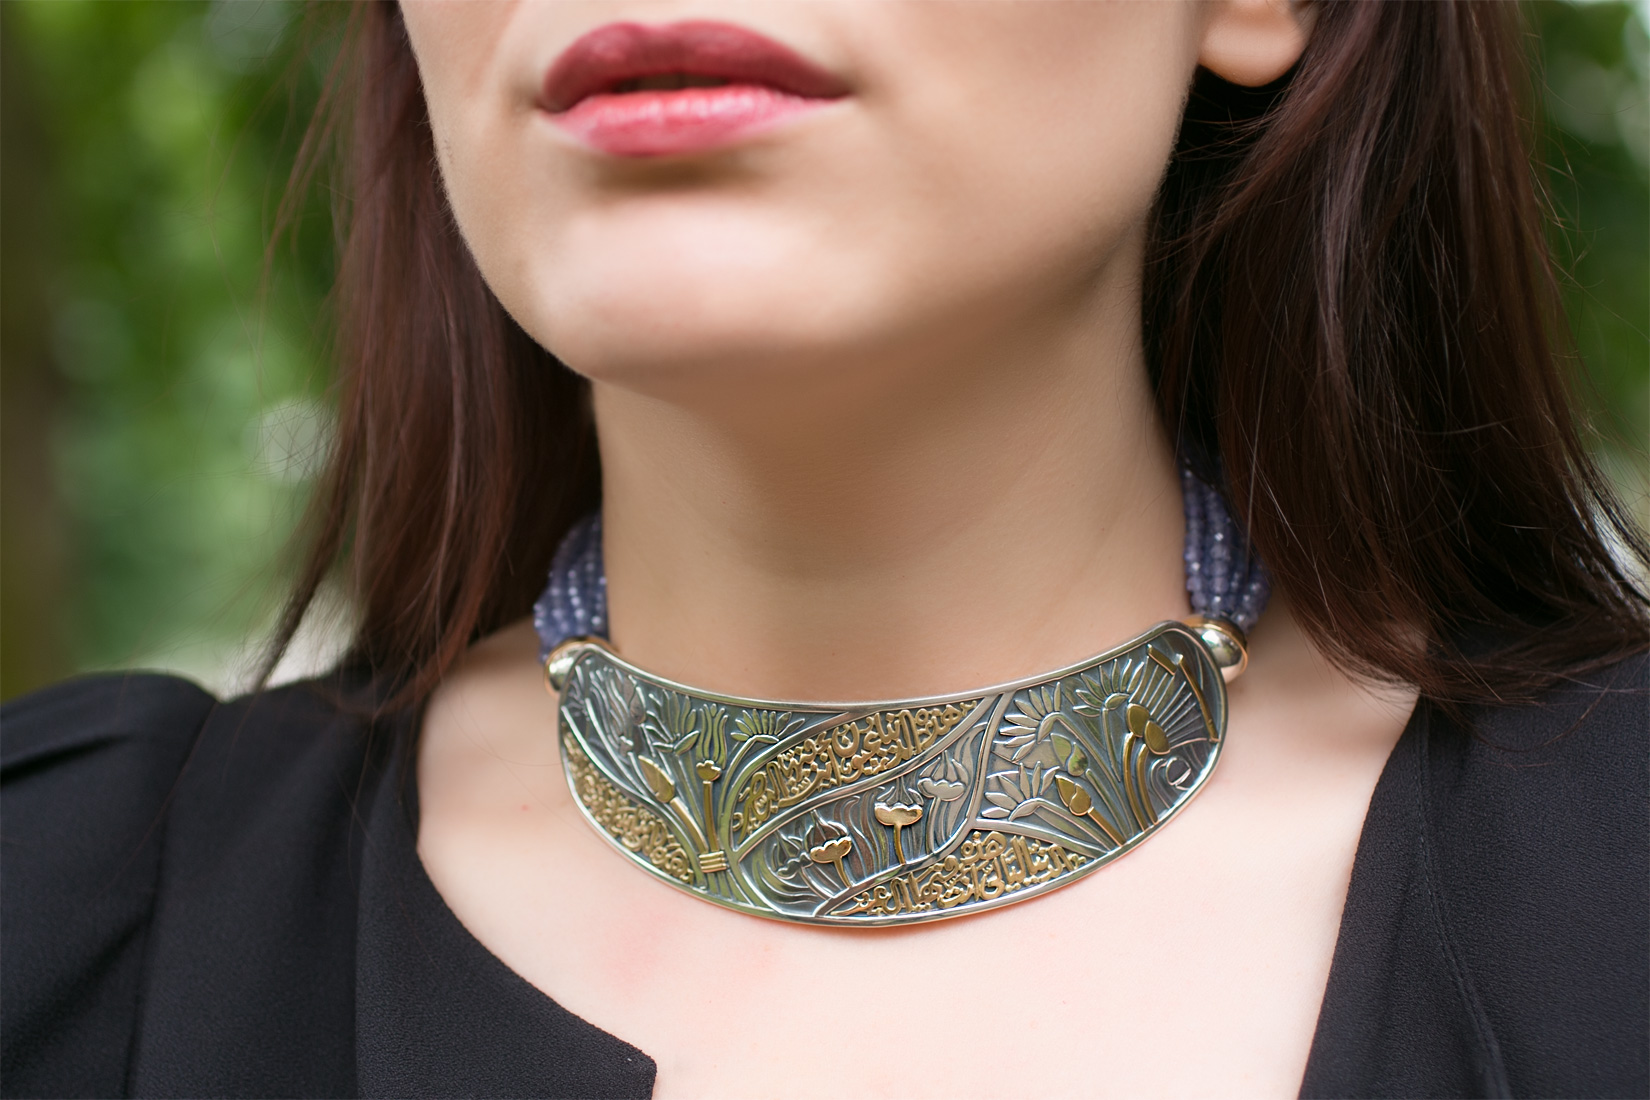 Azza Fahmy Birds of Paradise chocker from the Wonders of Nature collection